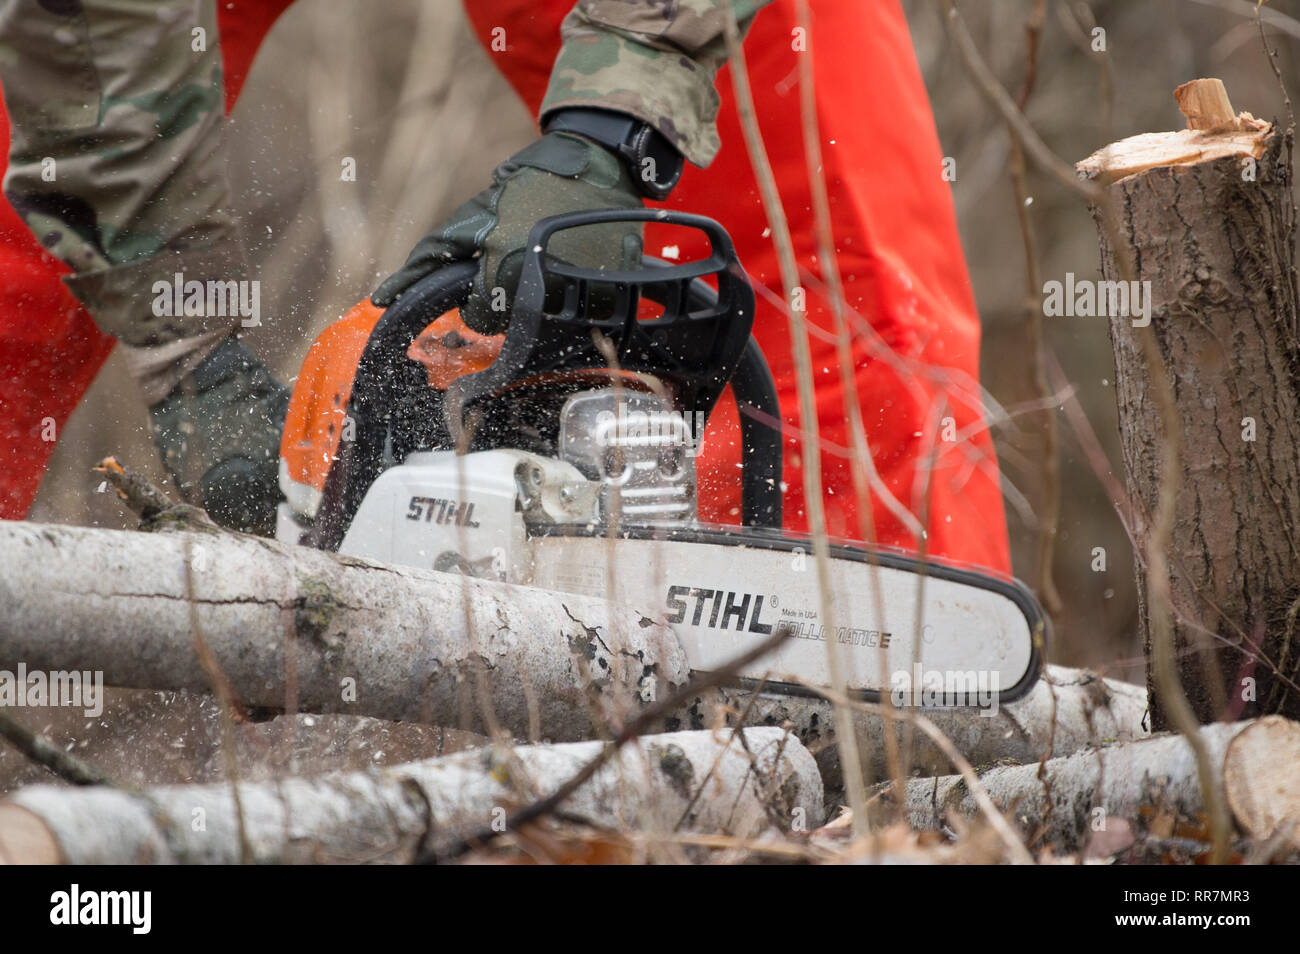 A Soldier cuts into a log with a chainsaw during training at Youngstown Local Training Area, Feb. 24, 2019. The training team was composed of New York Army National Guard and New York Guard Soldiers. They trained on how to use the equipment properly and safely. These Soldiers are just a few of more than 250 Soldiers and Airmen that are deployed to Western New York for debris clearing missions in support of Operation February Winter Storm. (U.S. Air National Guard photo by Master Sgt. Brandy Fowler) - Stock Image